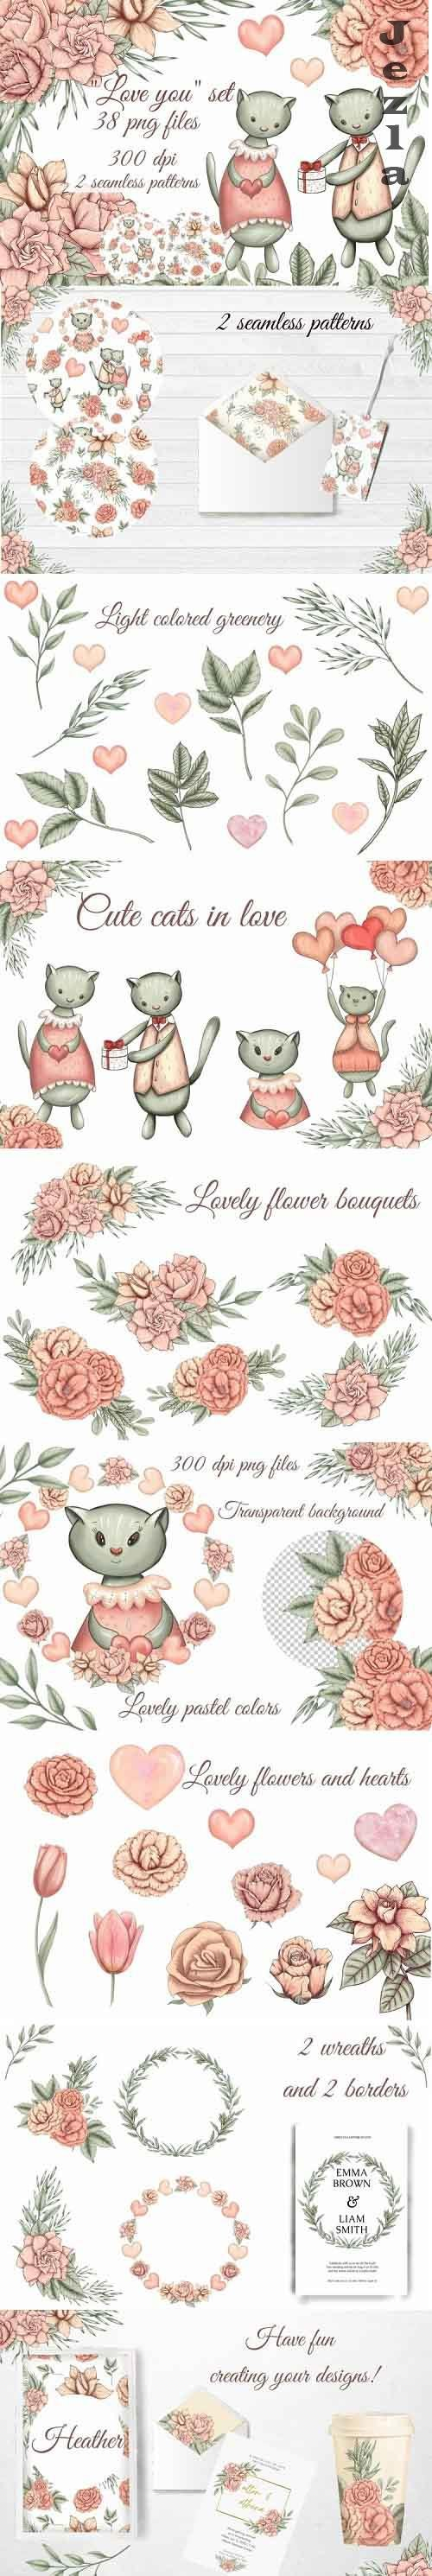 cute love cats clipart, pink flowers png, floral bouquets - 1182449